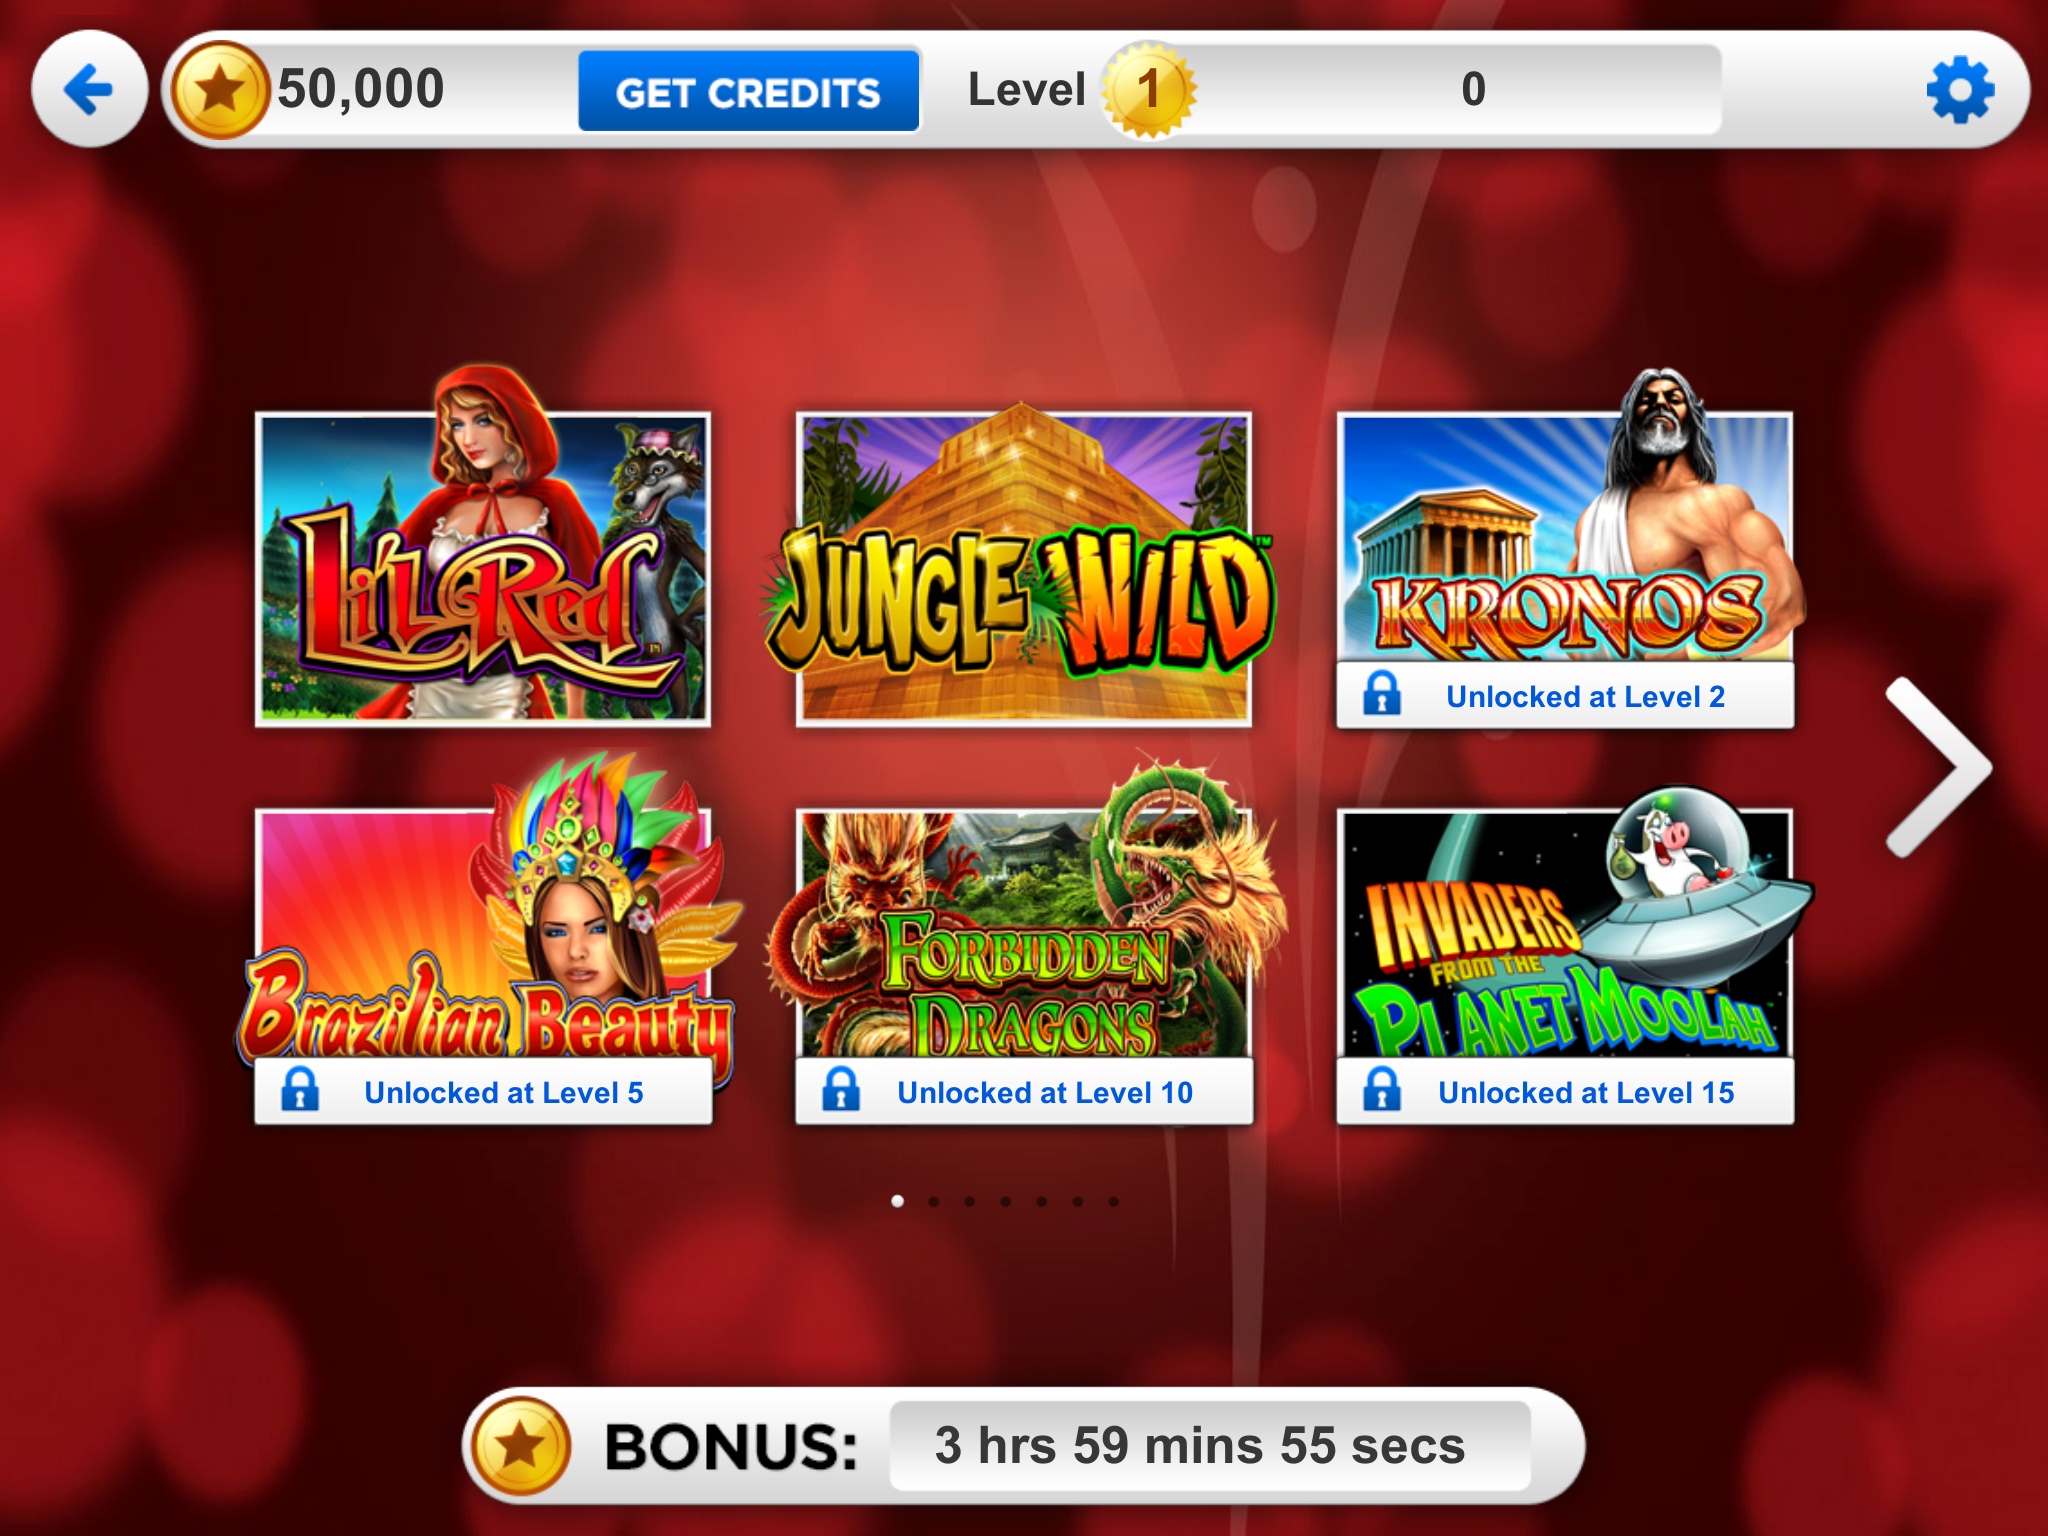 Cabazon Band offers free play gaming website and mobile app